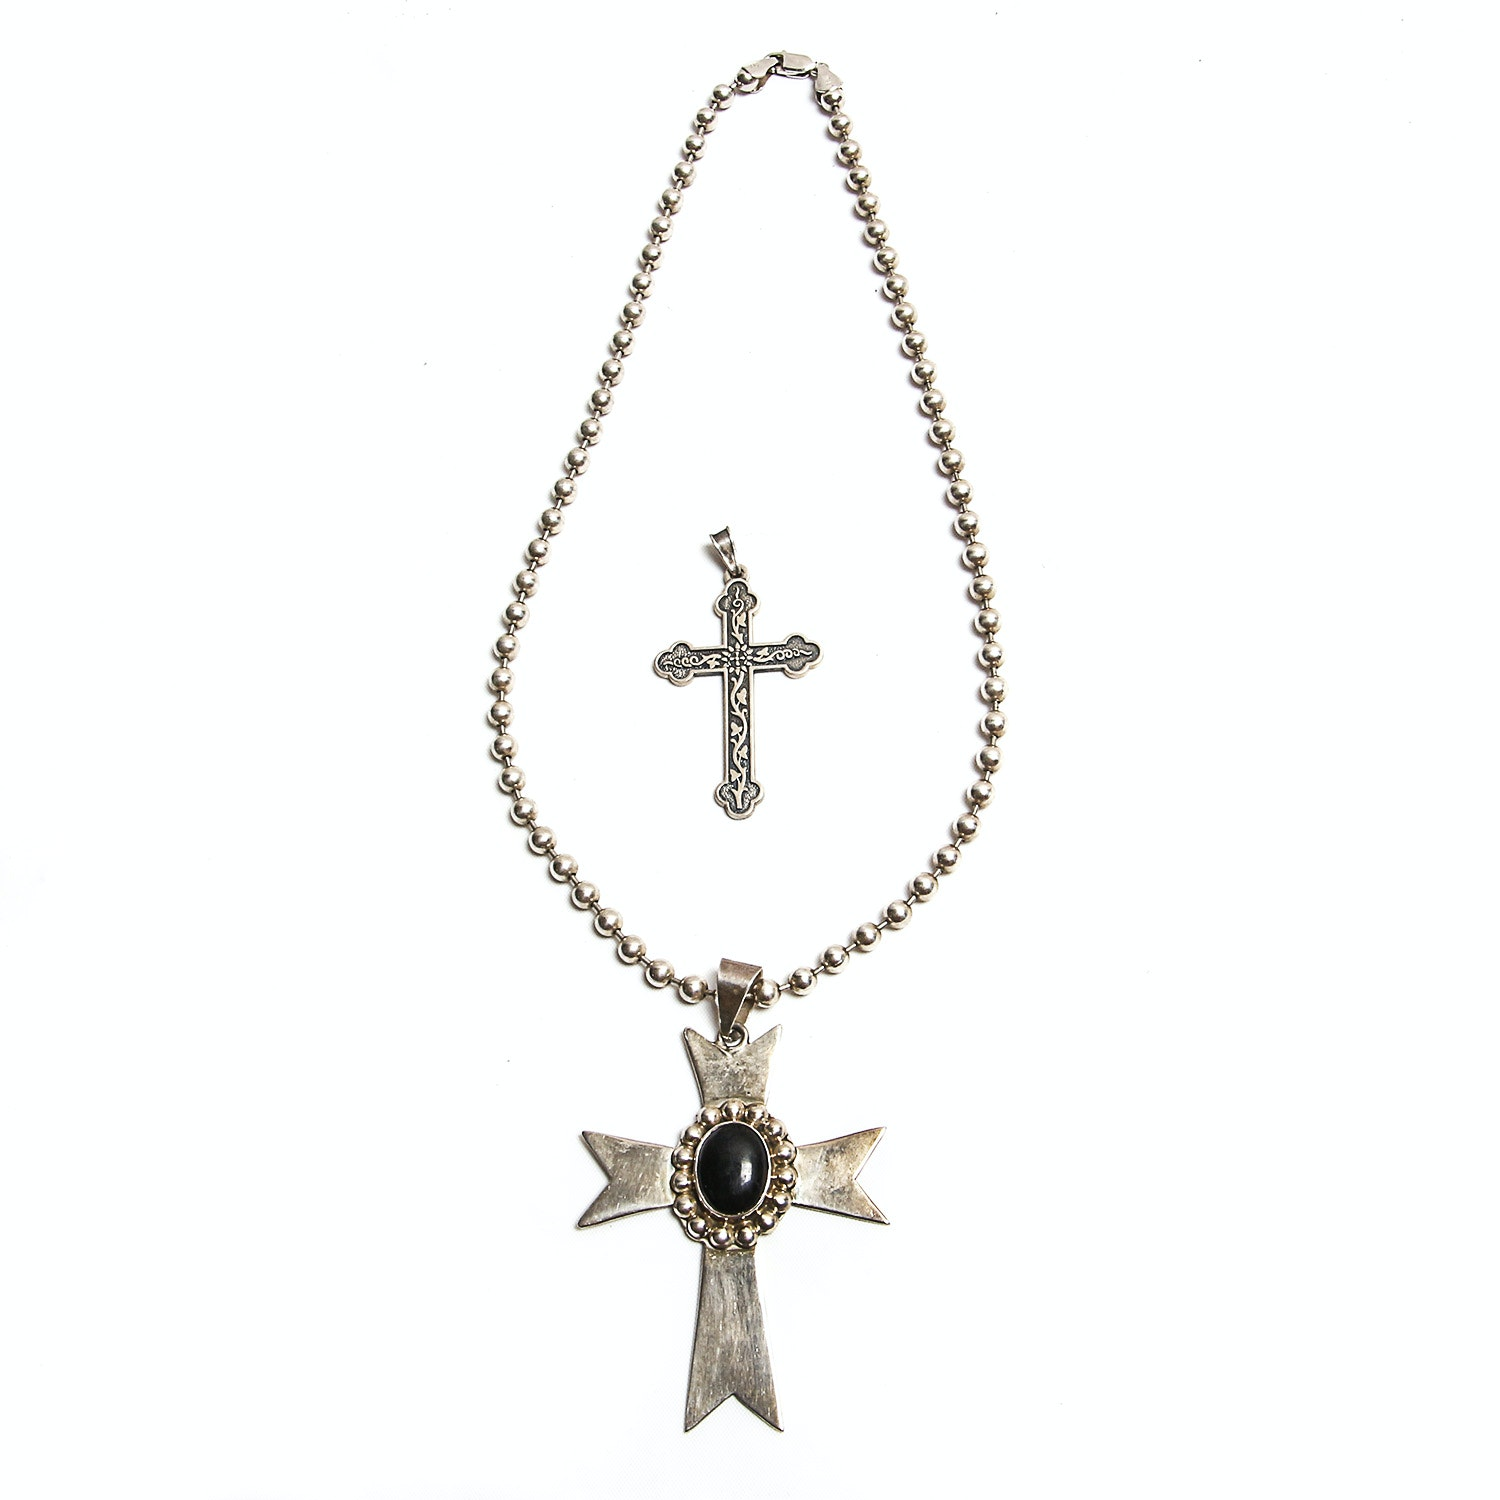 Sterling Silver Necklace with Pendant and James Avery Cross Pendant